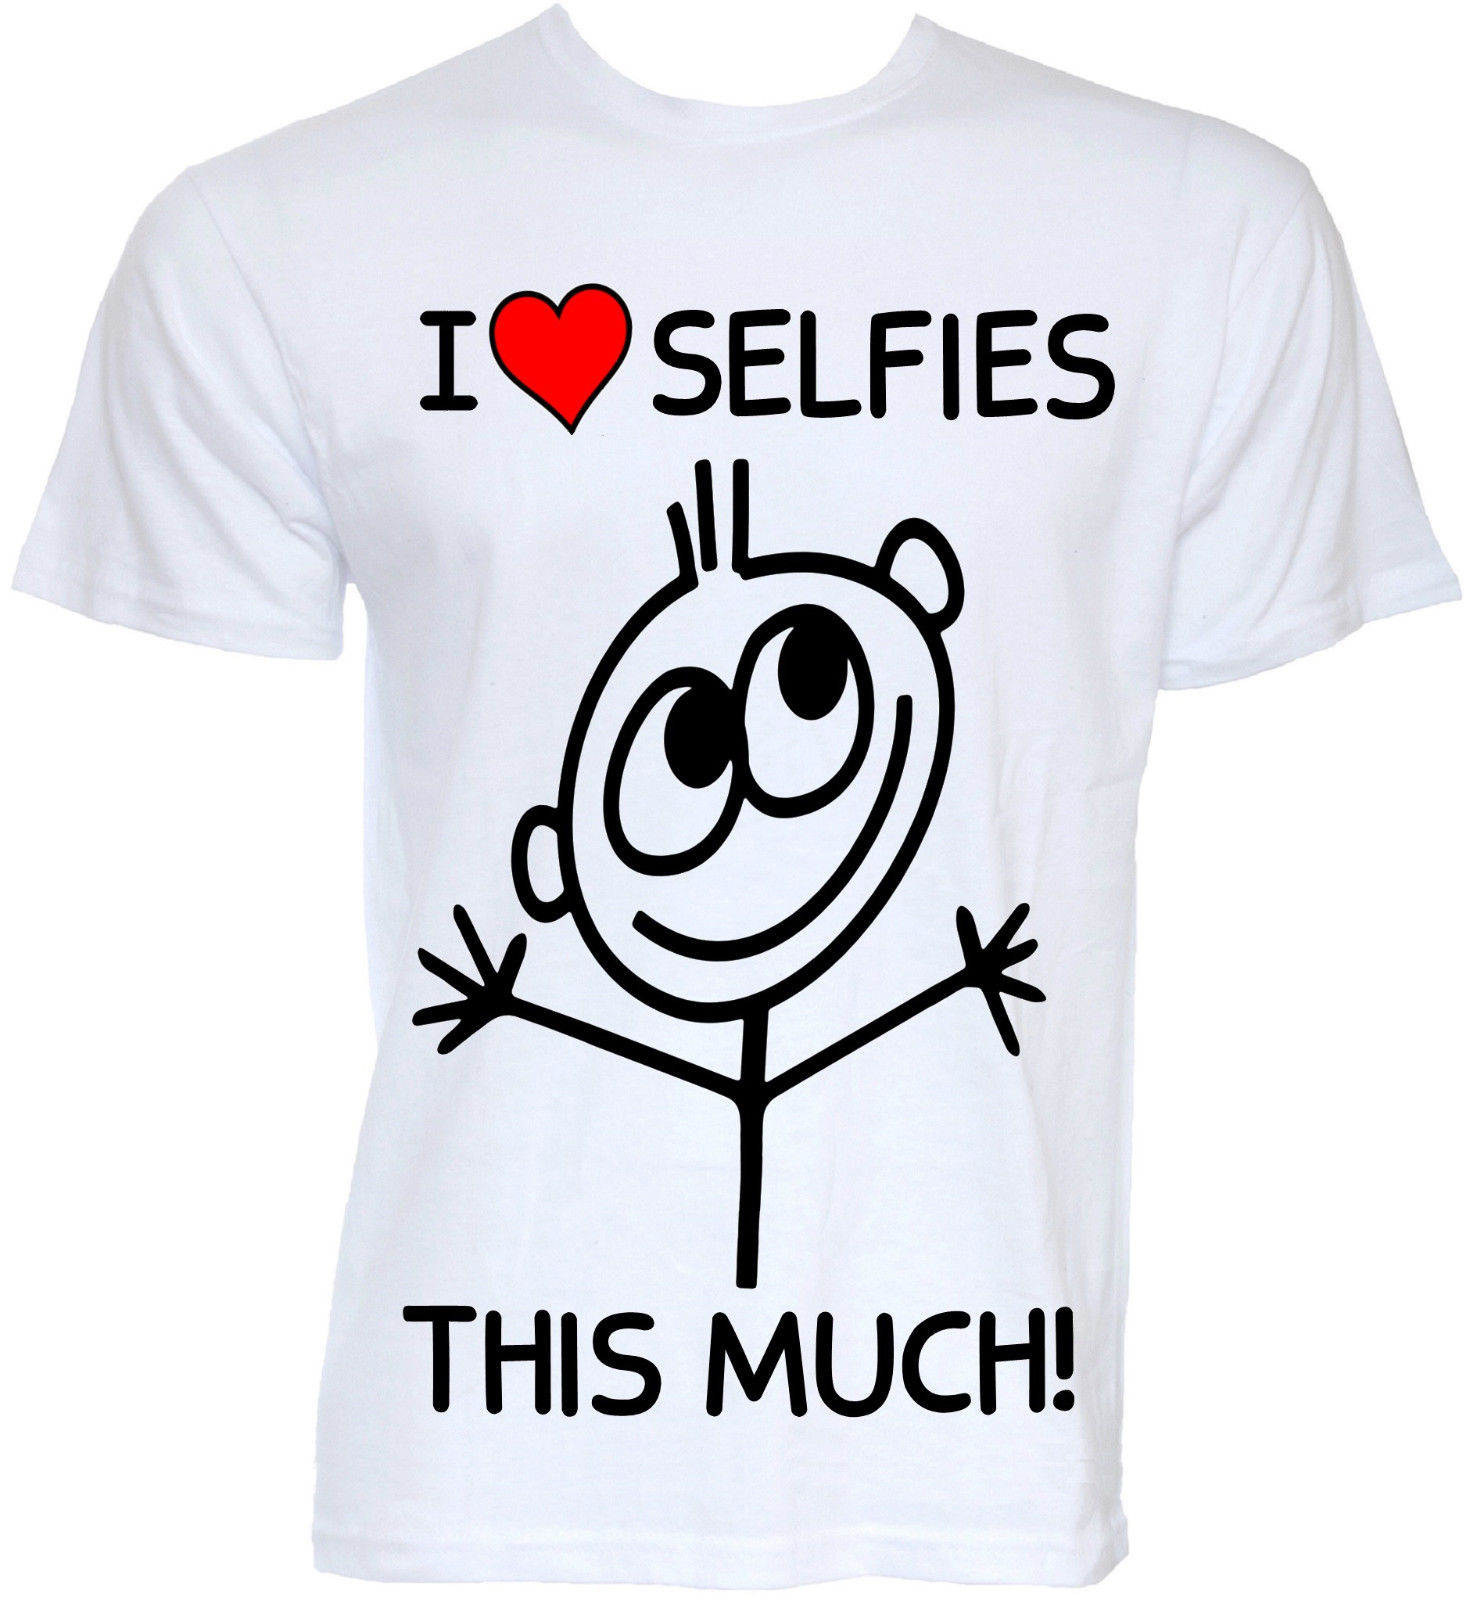 FUNNY NOVELTY LOVE SELFIES SELFIE ADDICT QUEEN SLOGAN JOKE T-SHIRTS RUDE GIFTS Summer Man T Shirt Tops Tees New Fashion Men ...